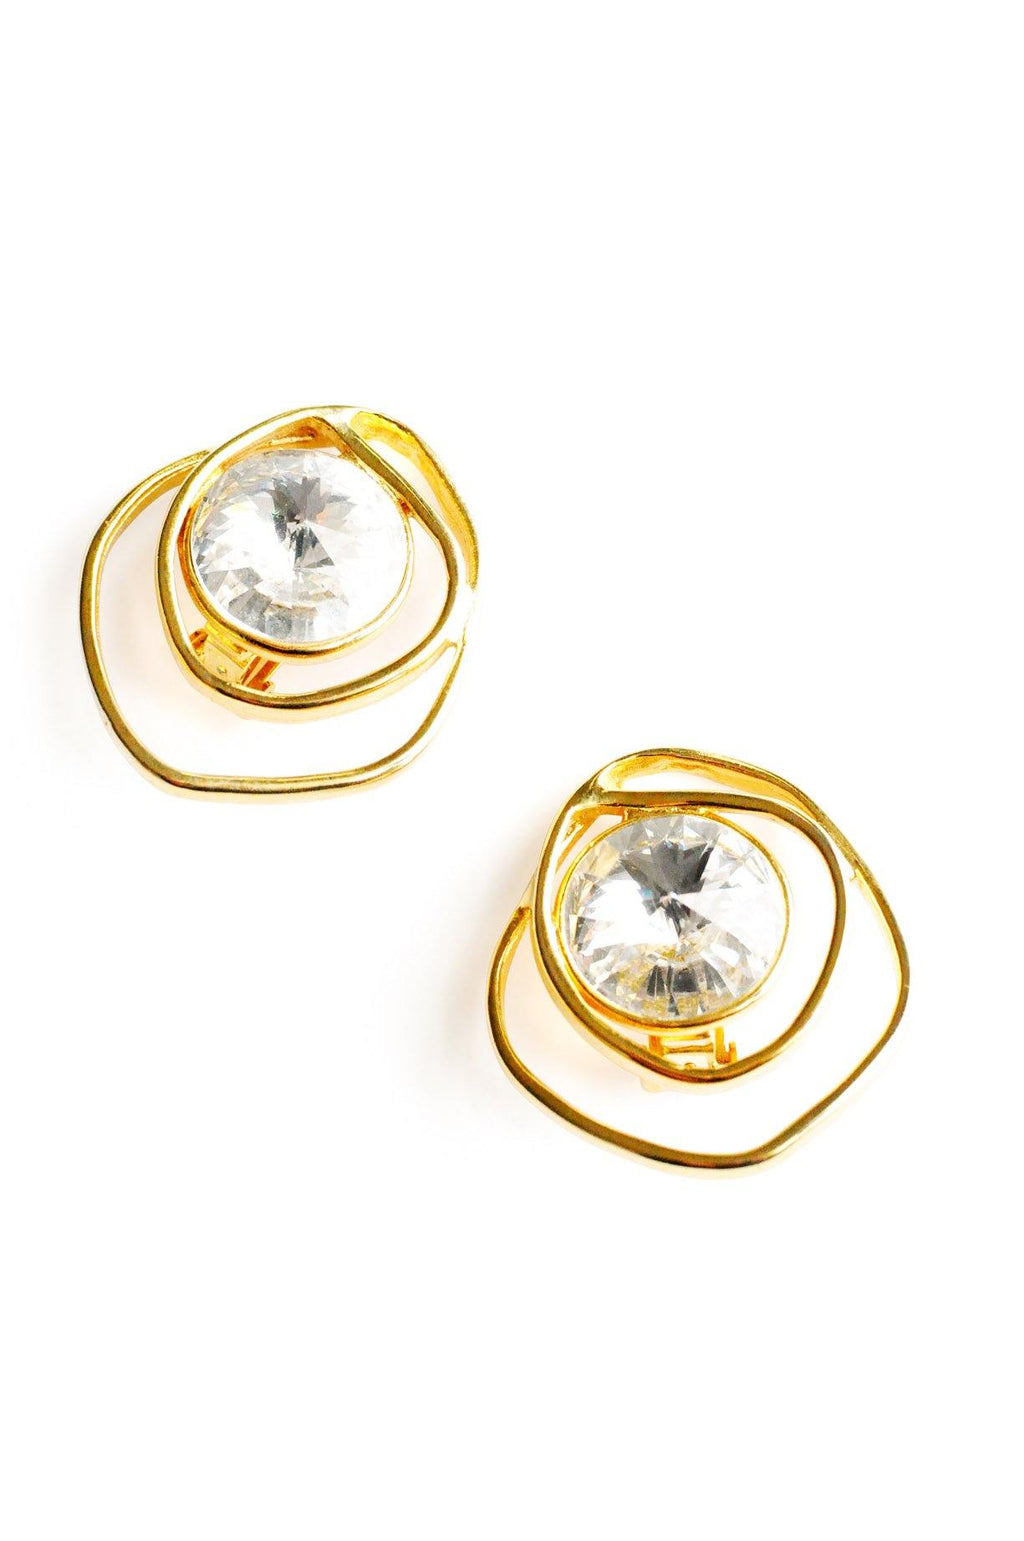 Rhinestone with Gold Clip-on Earrings